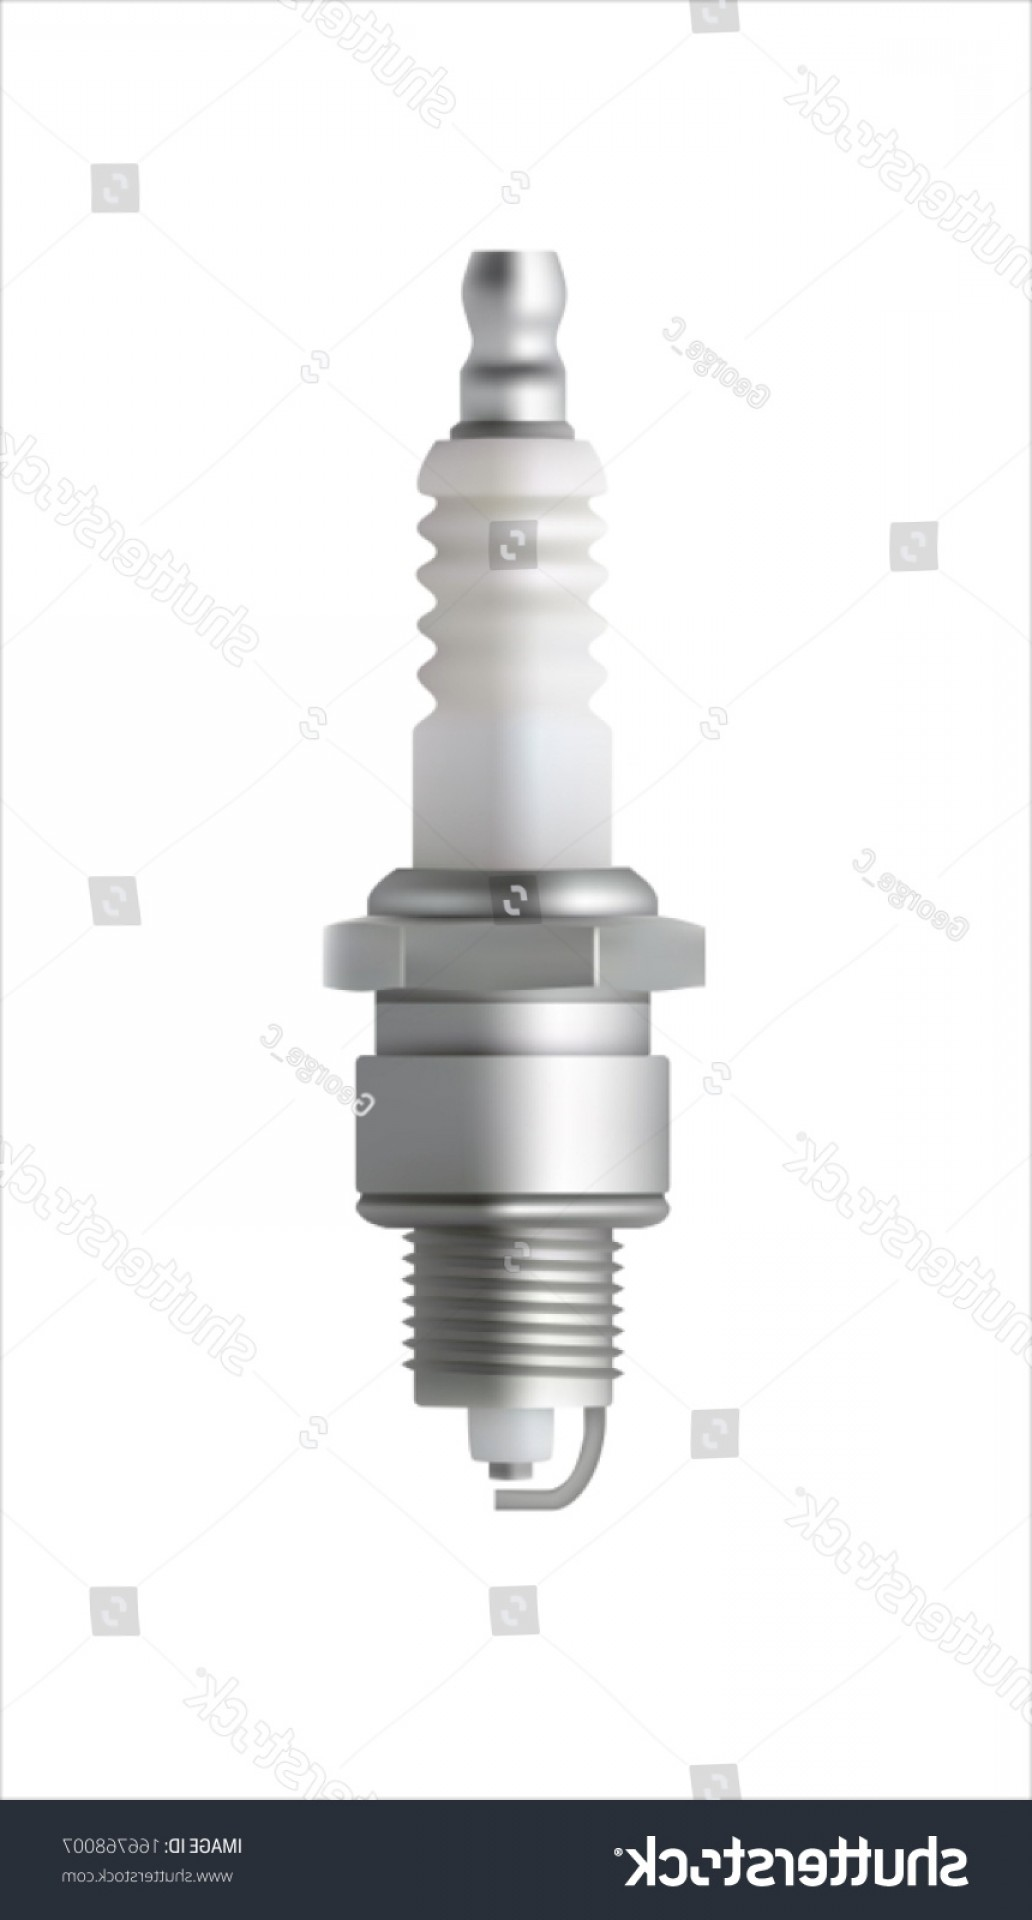 Spark Plug Vector: Spark Plug Vector Isolated On White